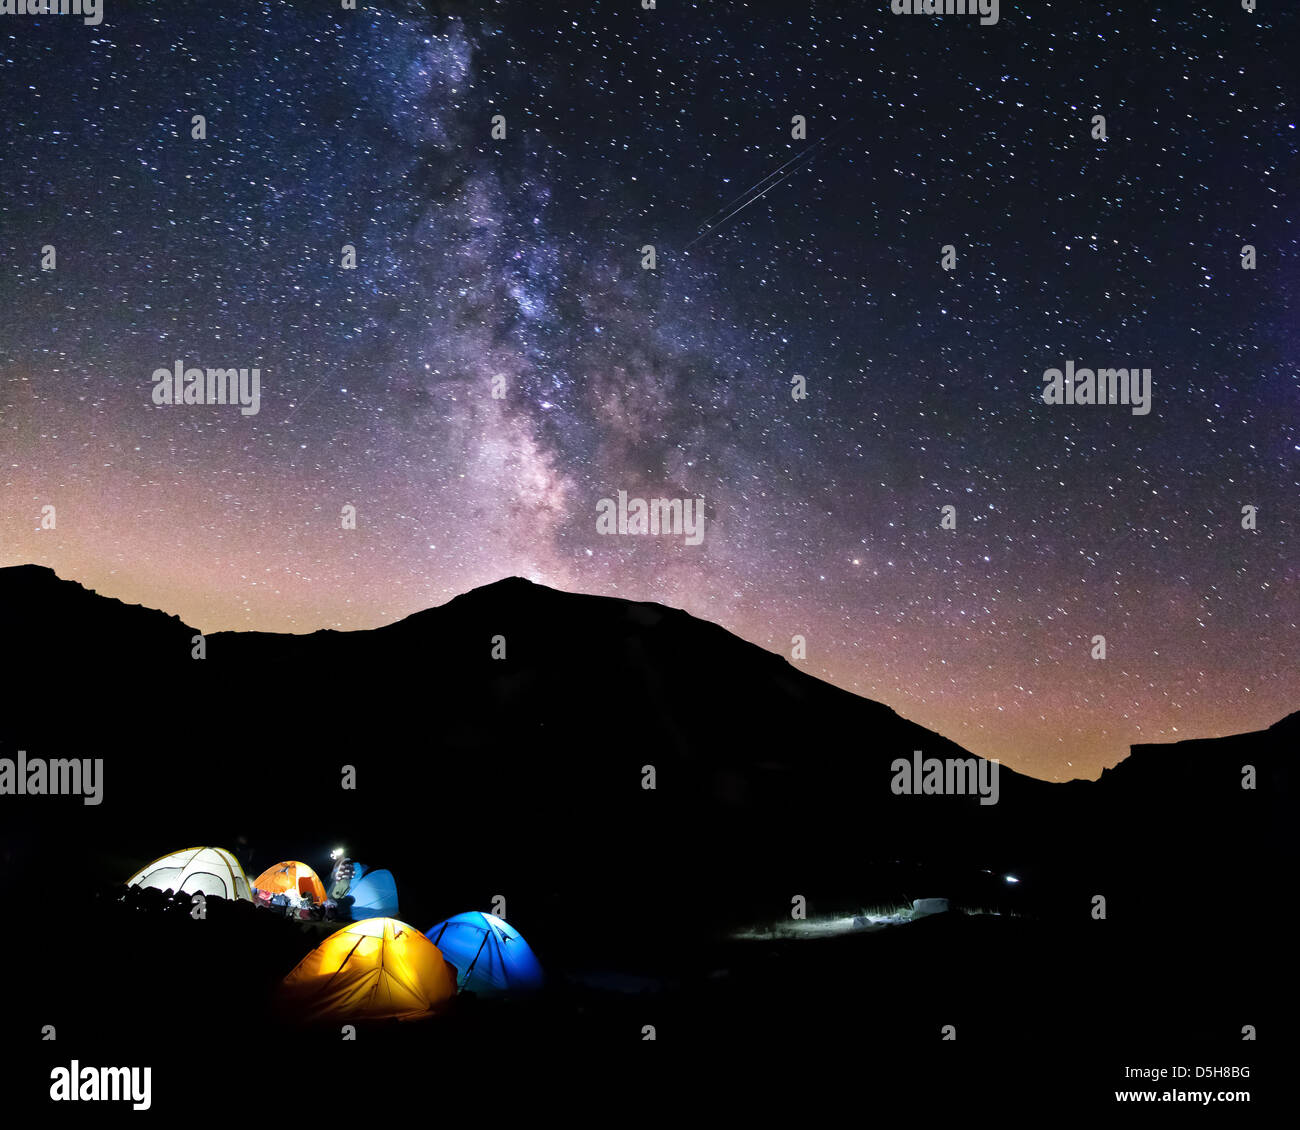 Night Sky and milky way over tents - Stock Image